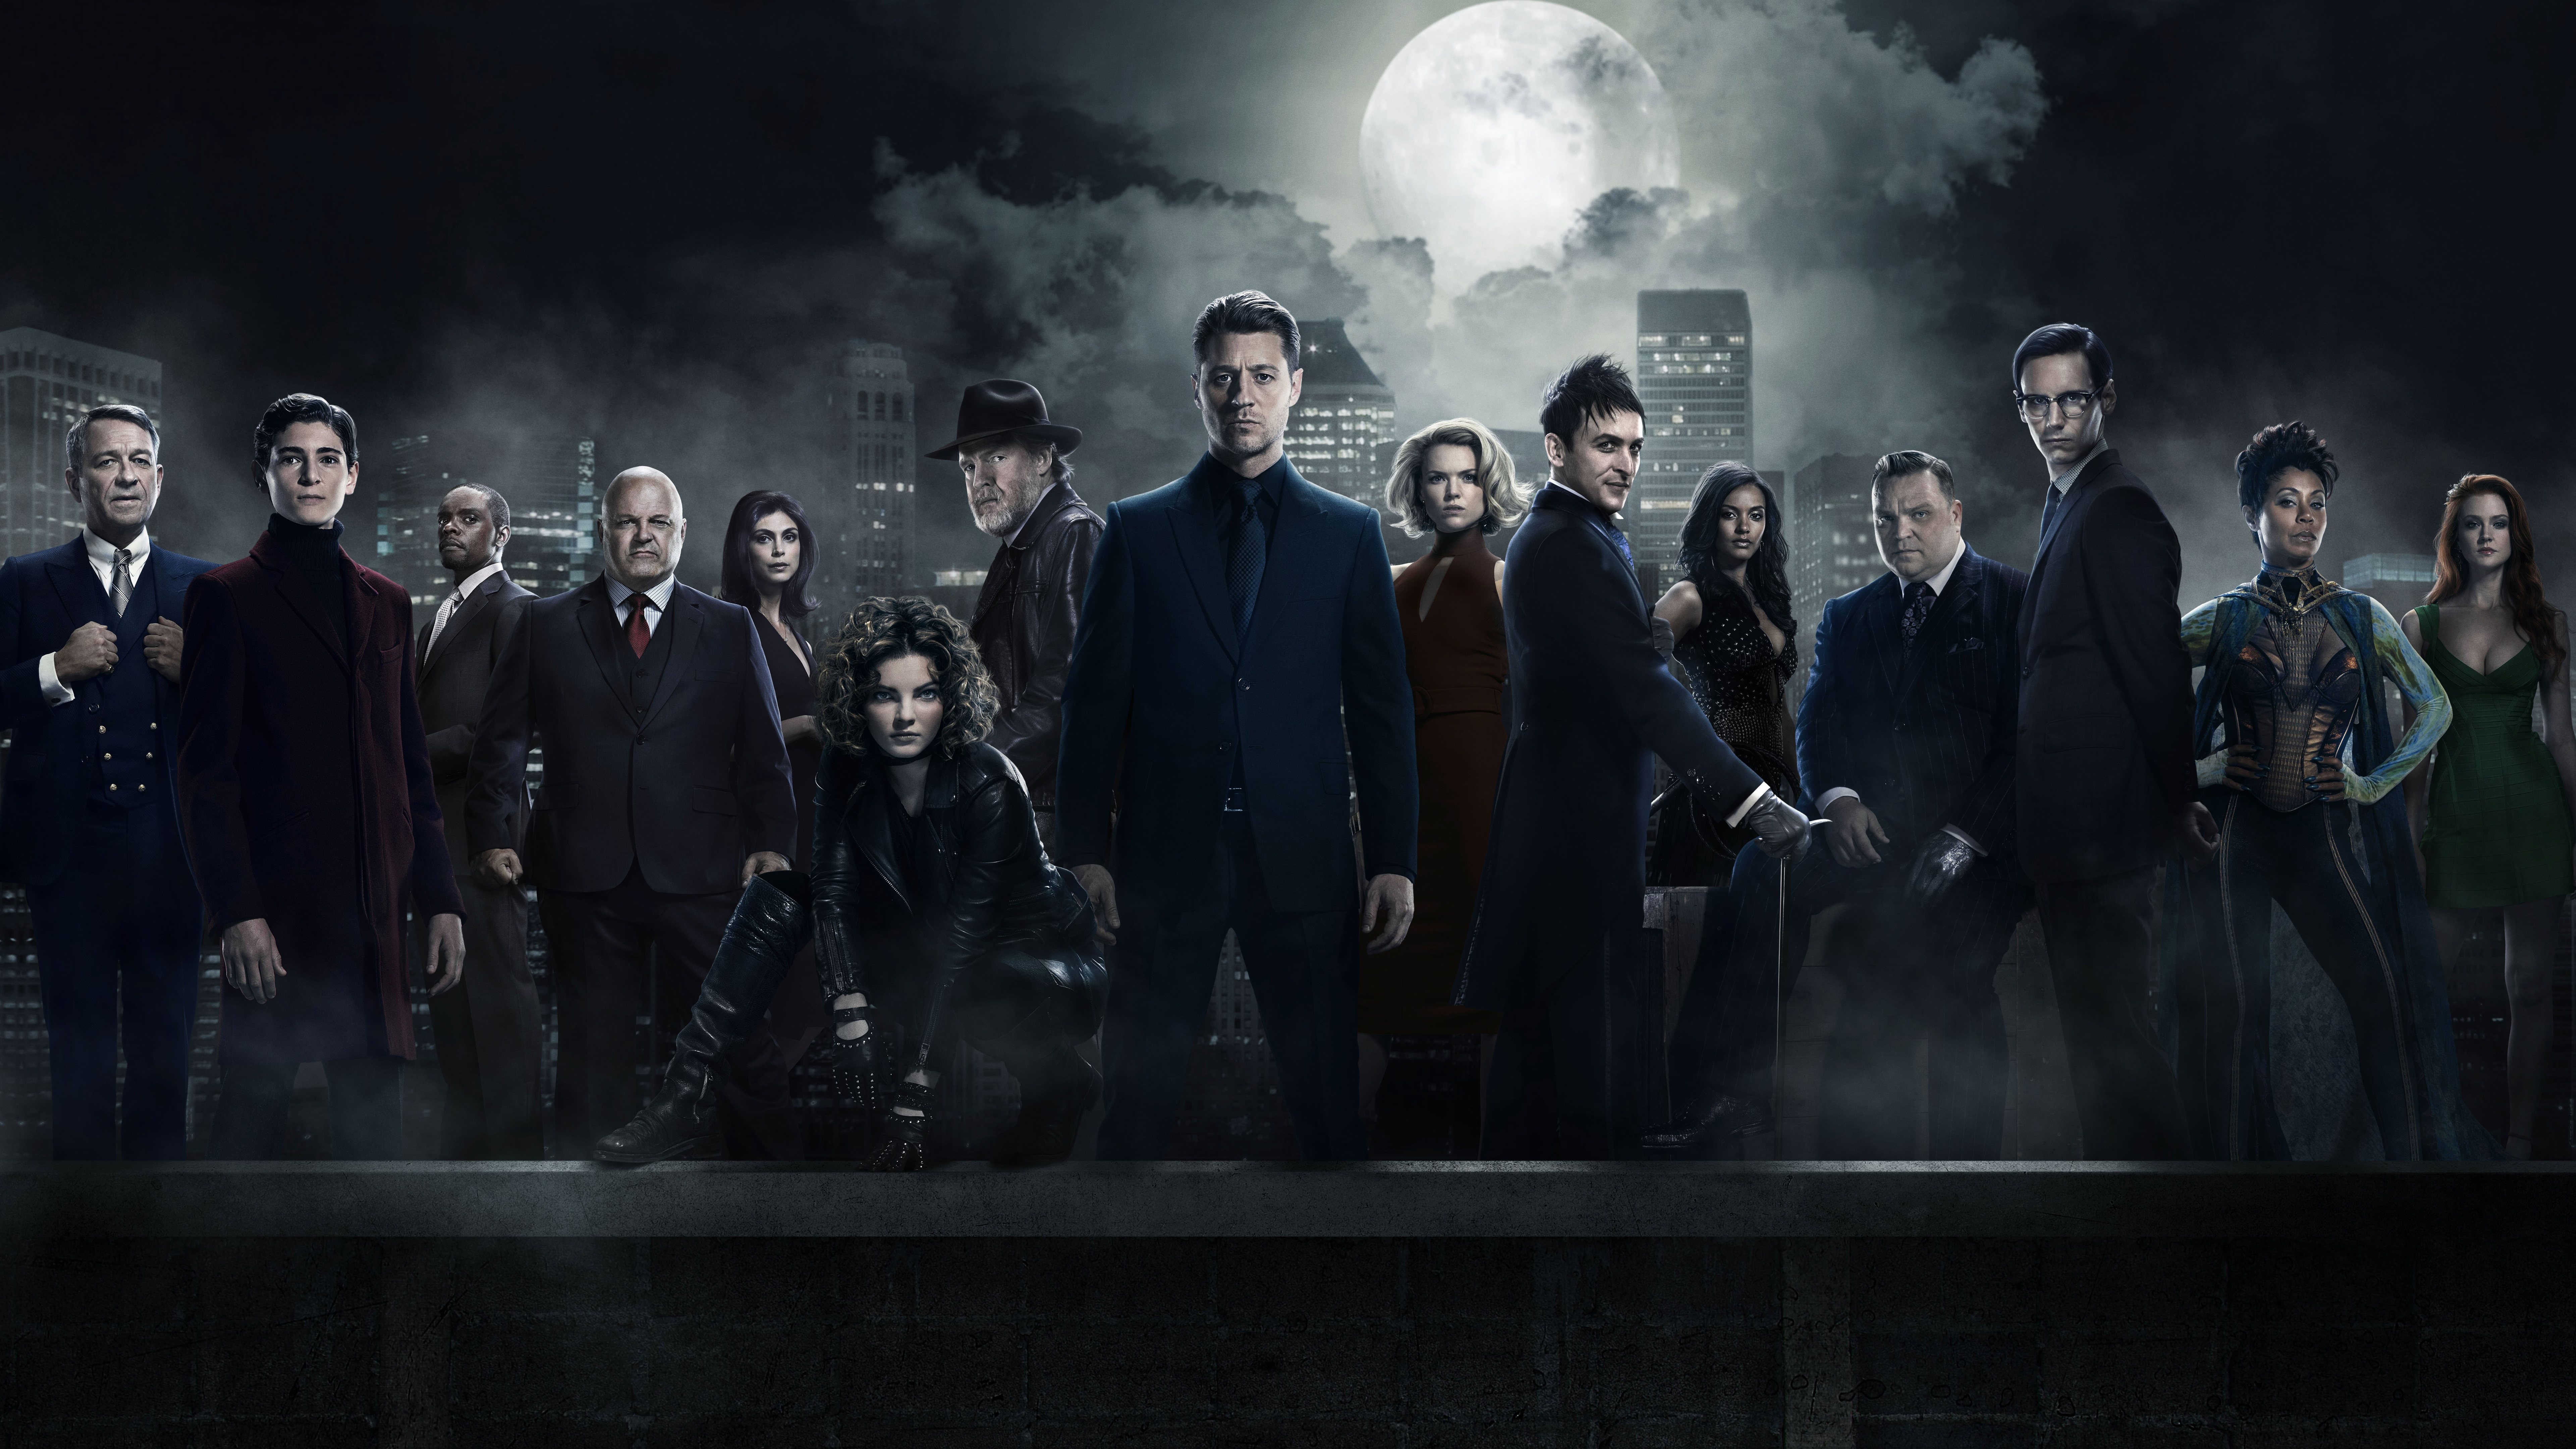 Gotham Wallpapers and Background Images   stmednet 7680x4320